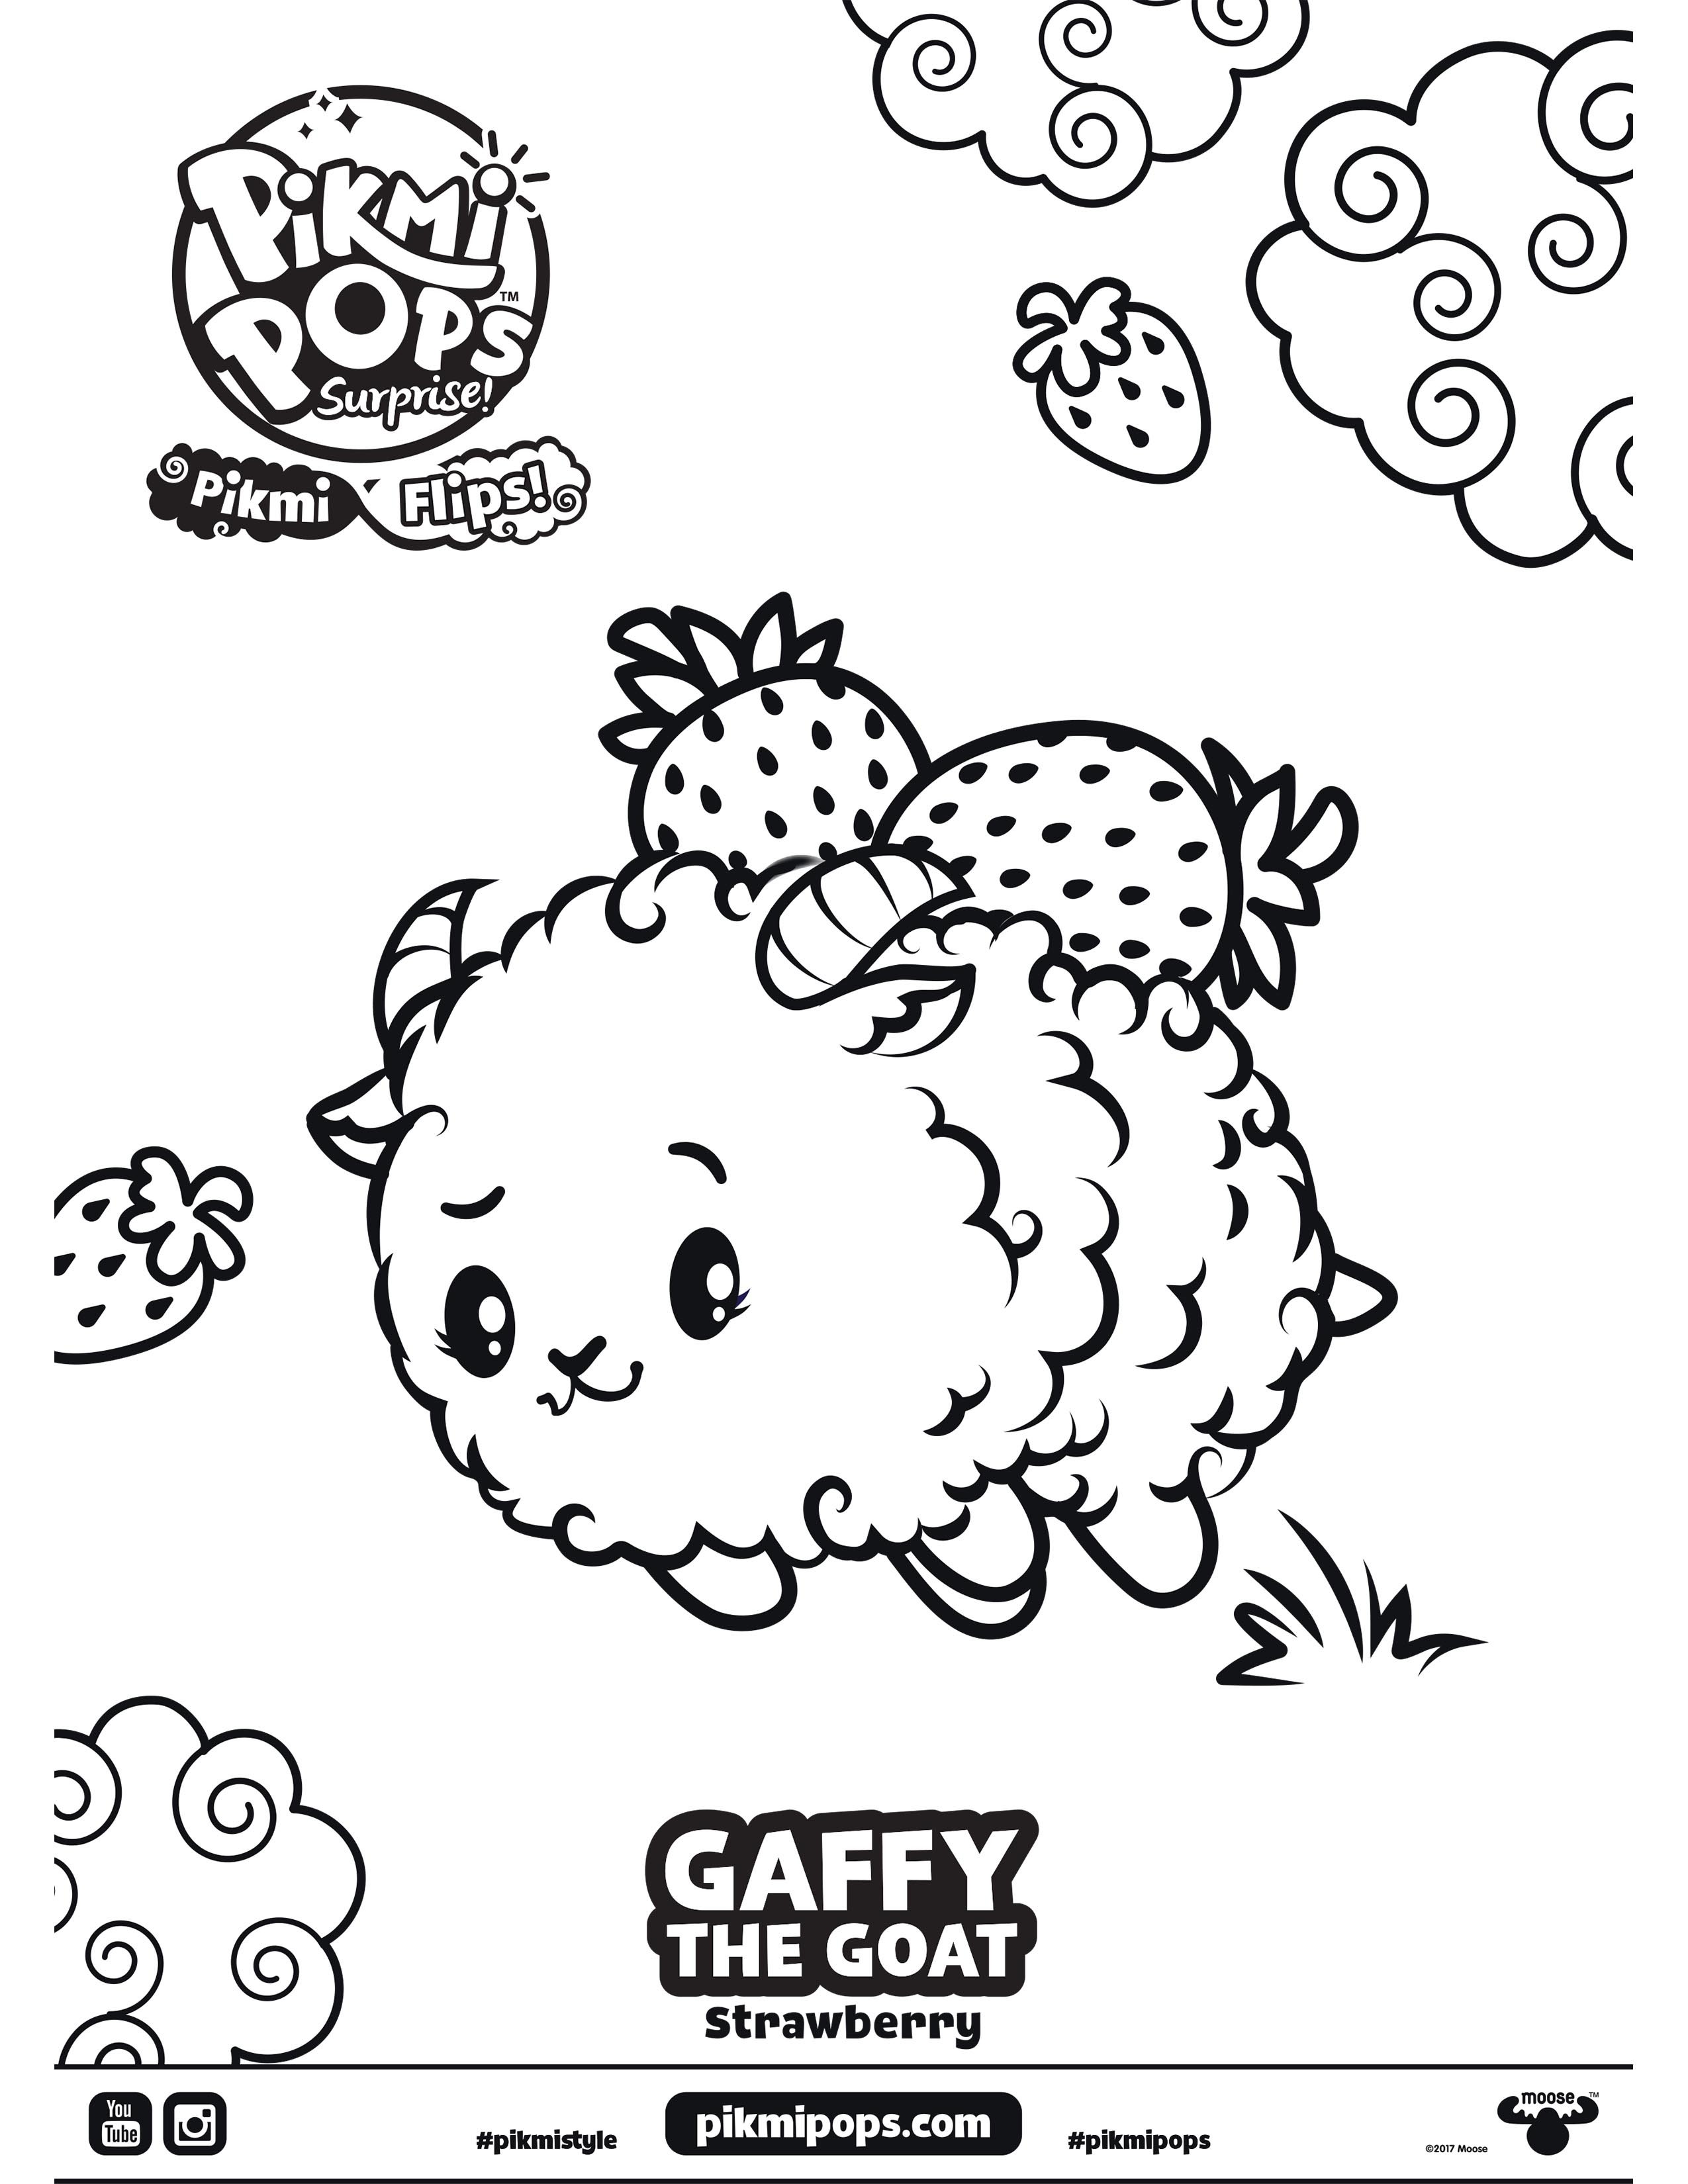 pikmi-pops-surprise-season-4-flips-coloring-sheet-gaffy ...